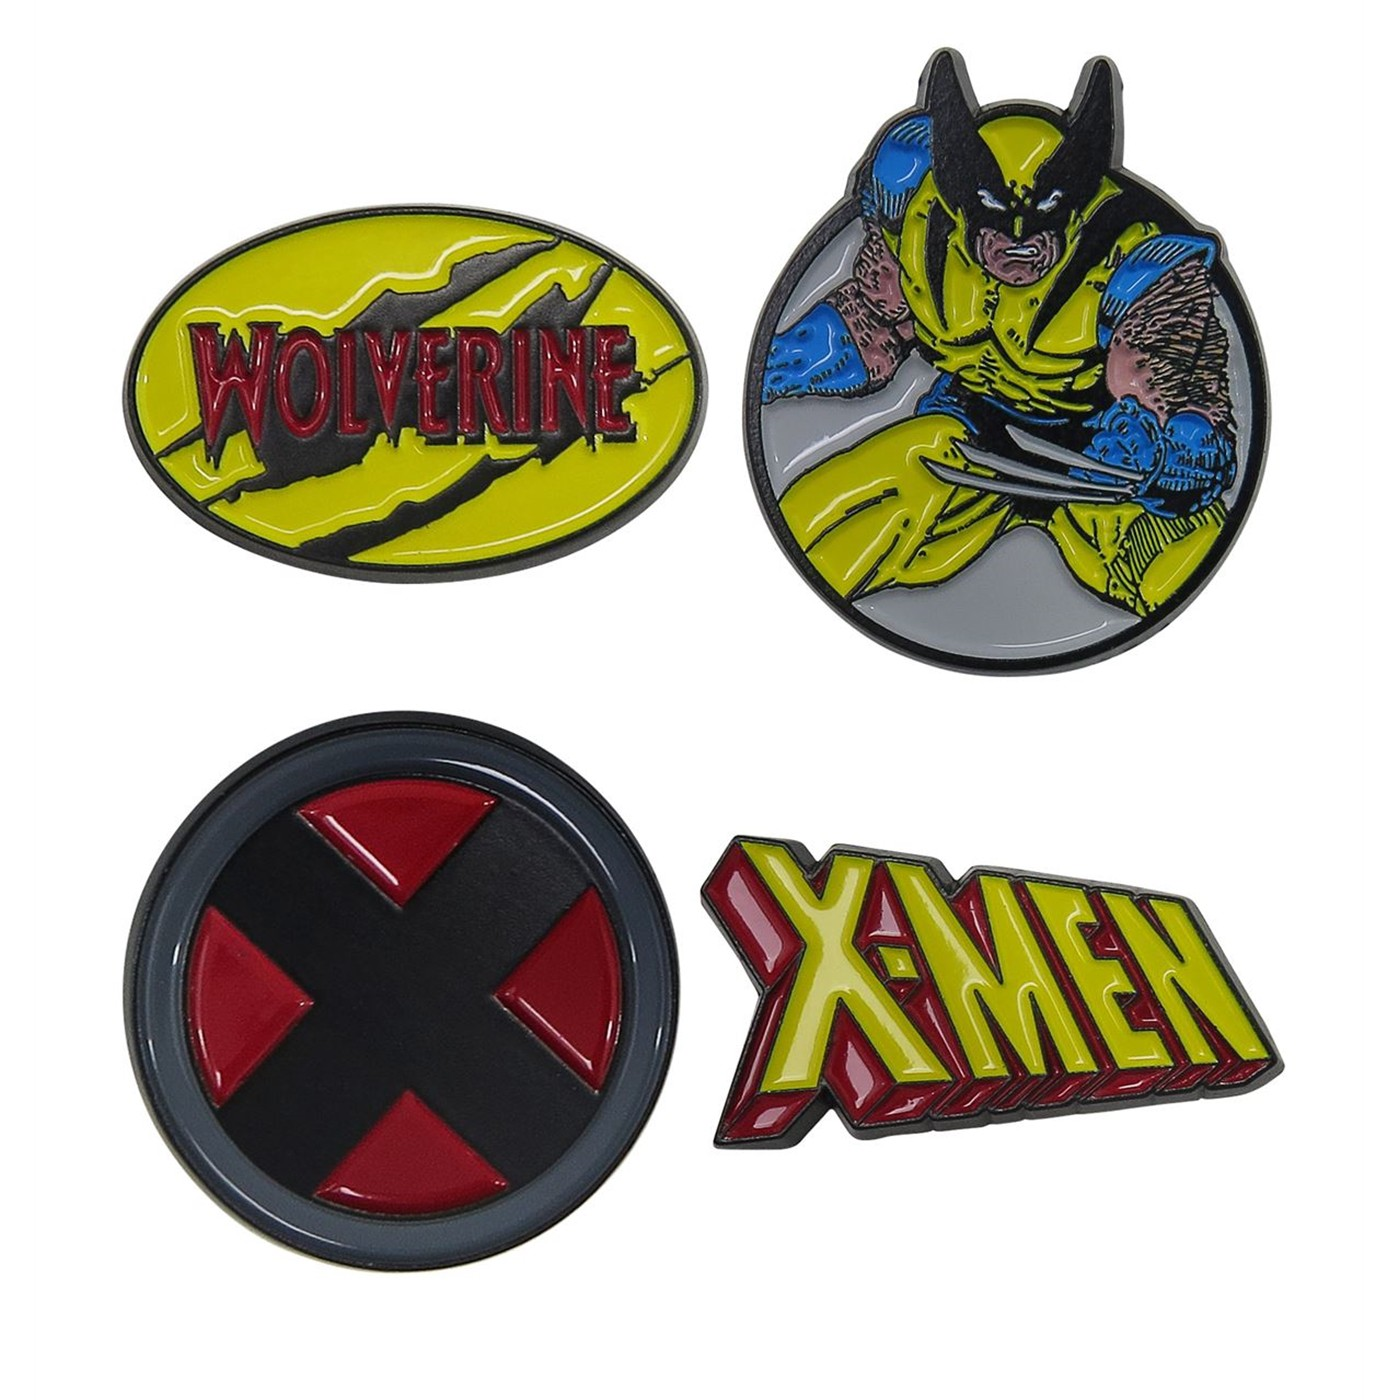 Wolverine & The X-Men Lapel Pin Set of 4